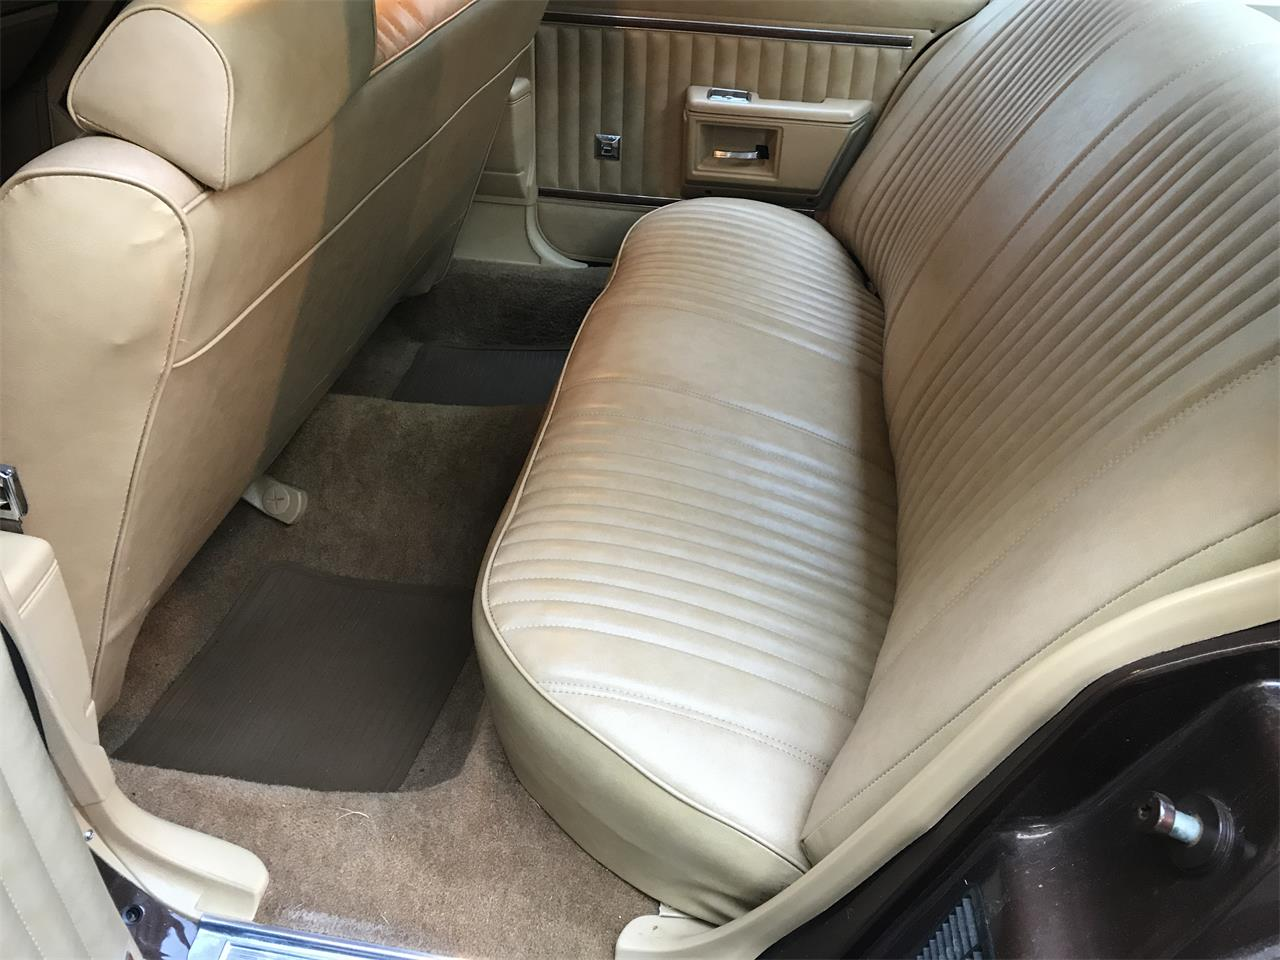 Large Picture of 1977 Pontiac Catalina located in Dix Hills New York Offered by a Private Seller - LHWC